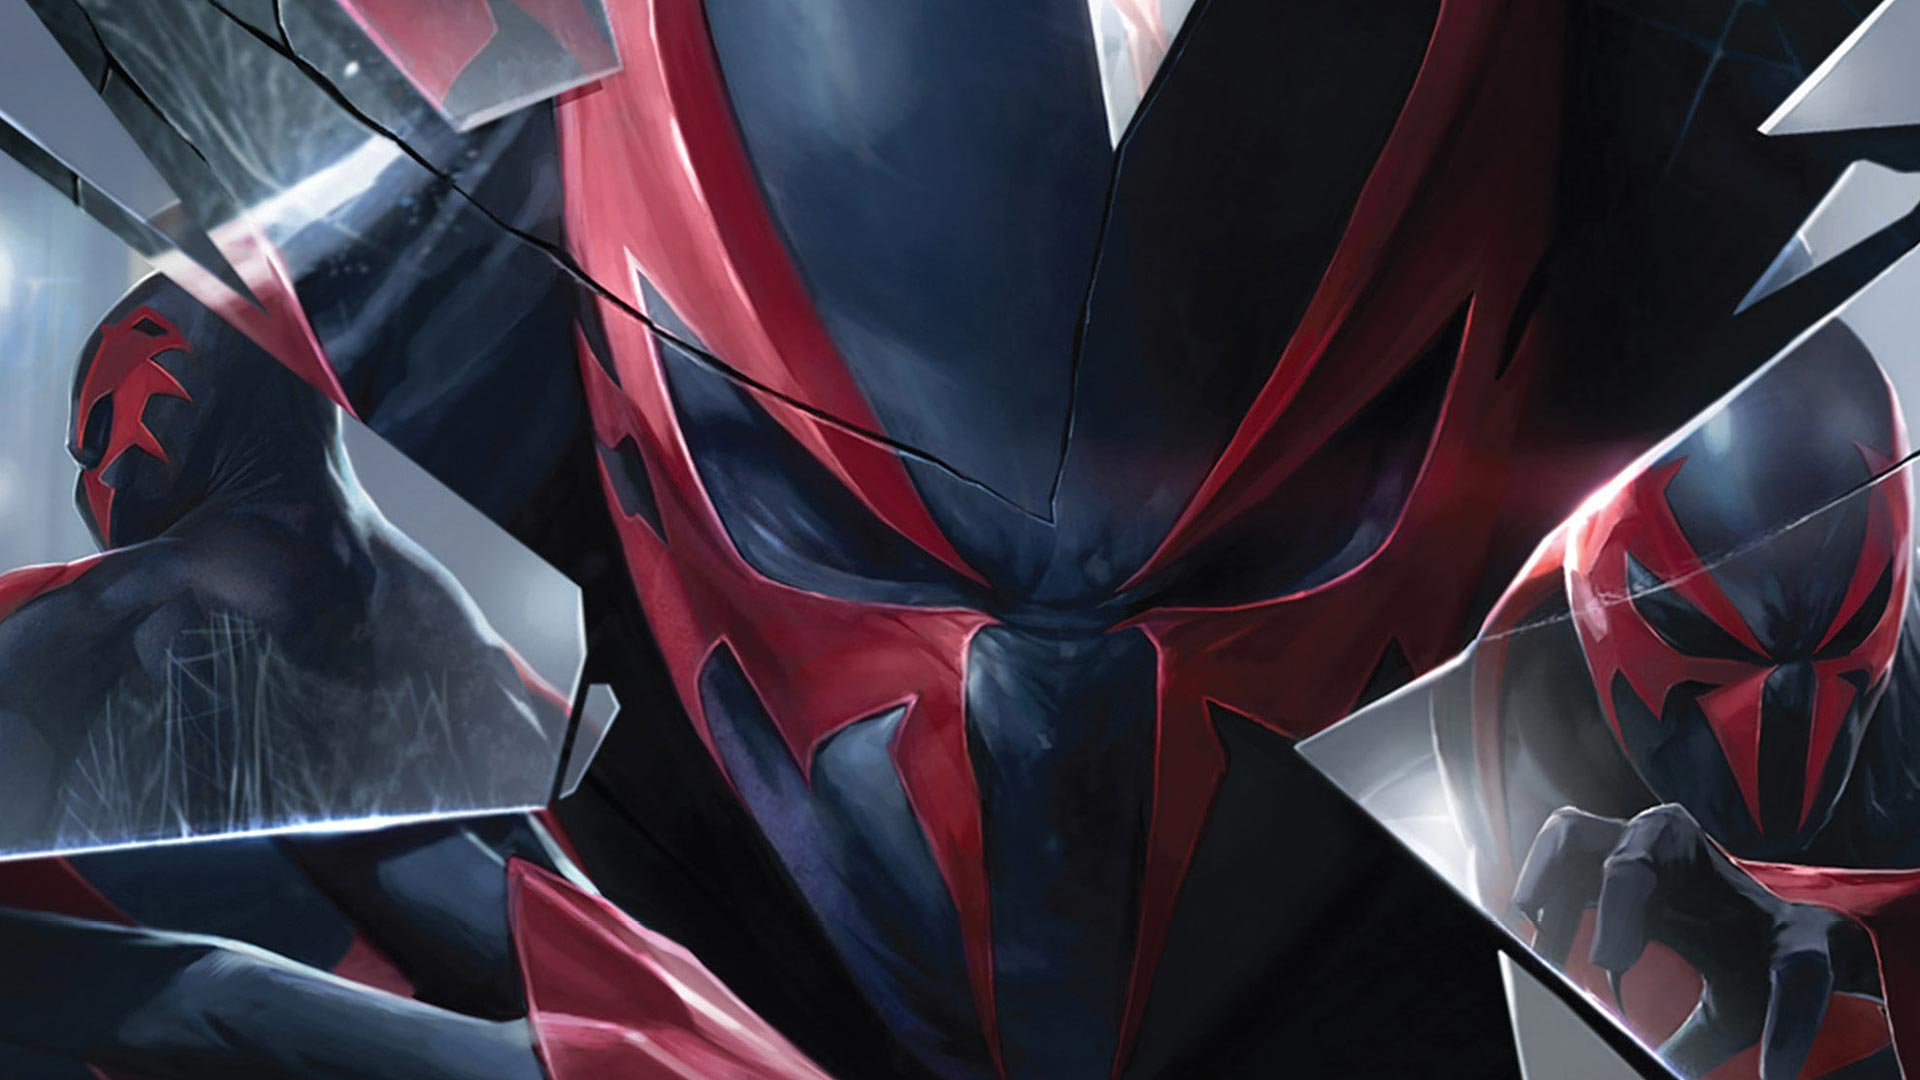 spider-man 2099 theme for windows 10 | 8 | 7